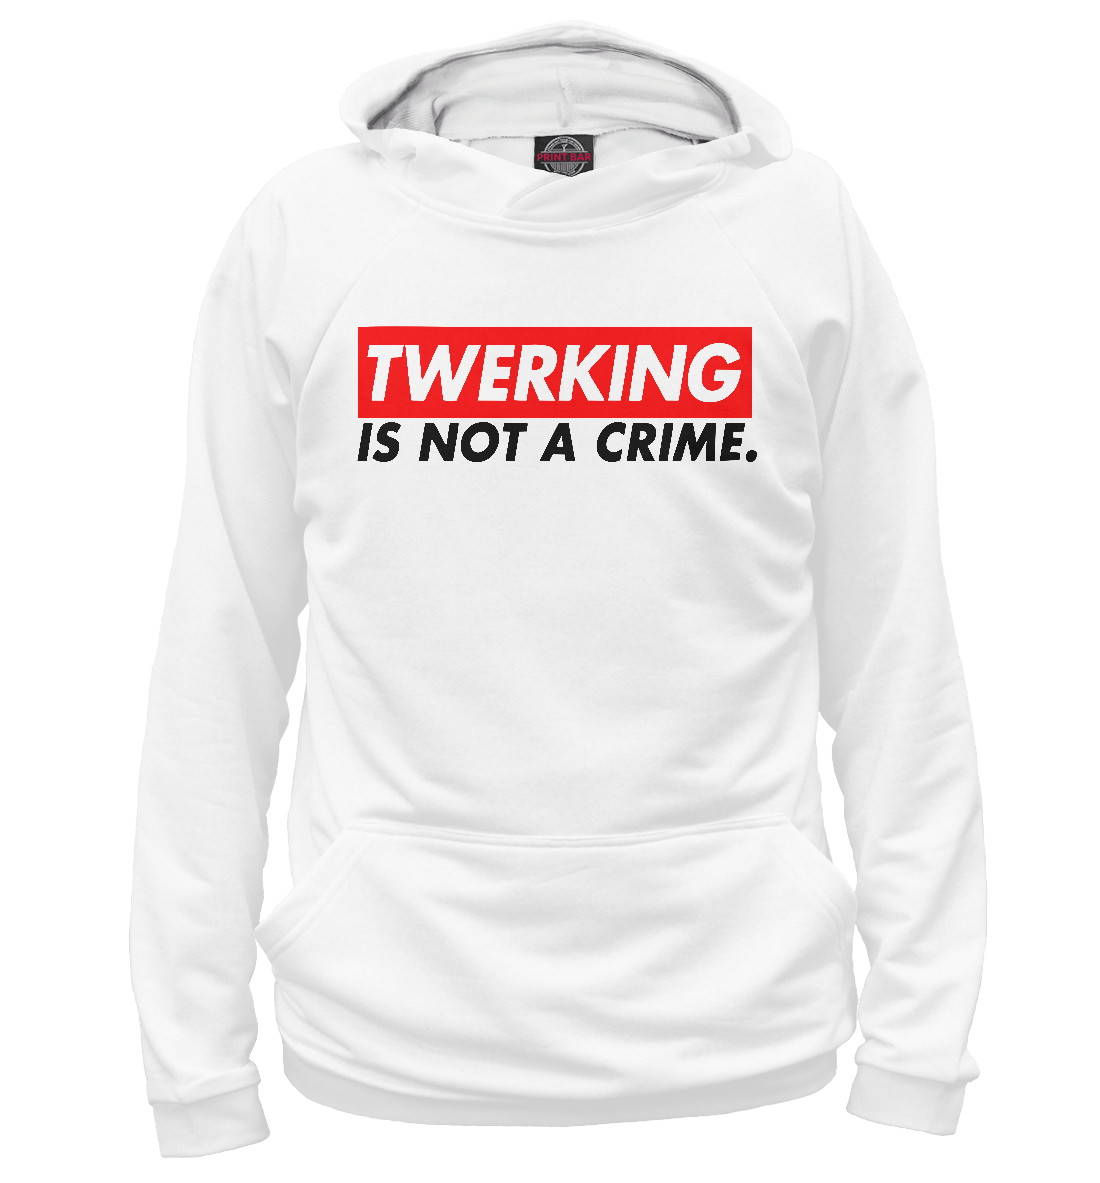 twerking is not a crime born a crime